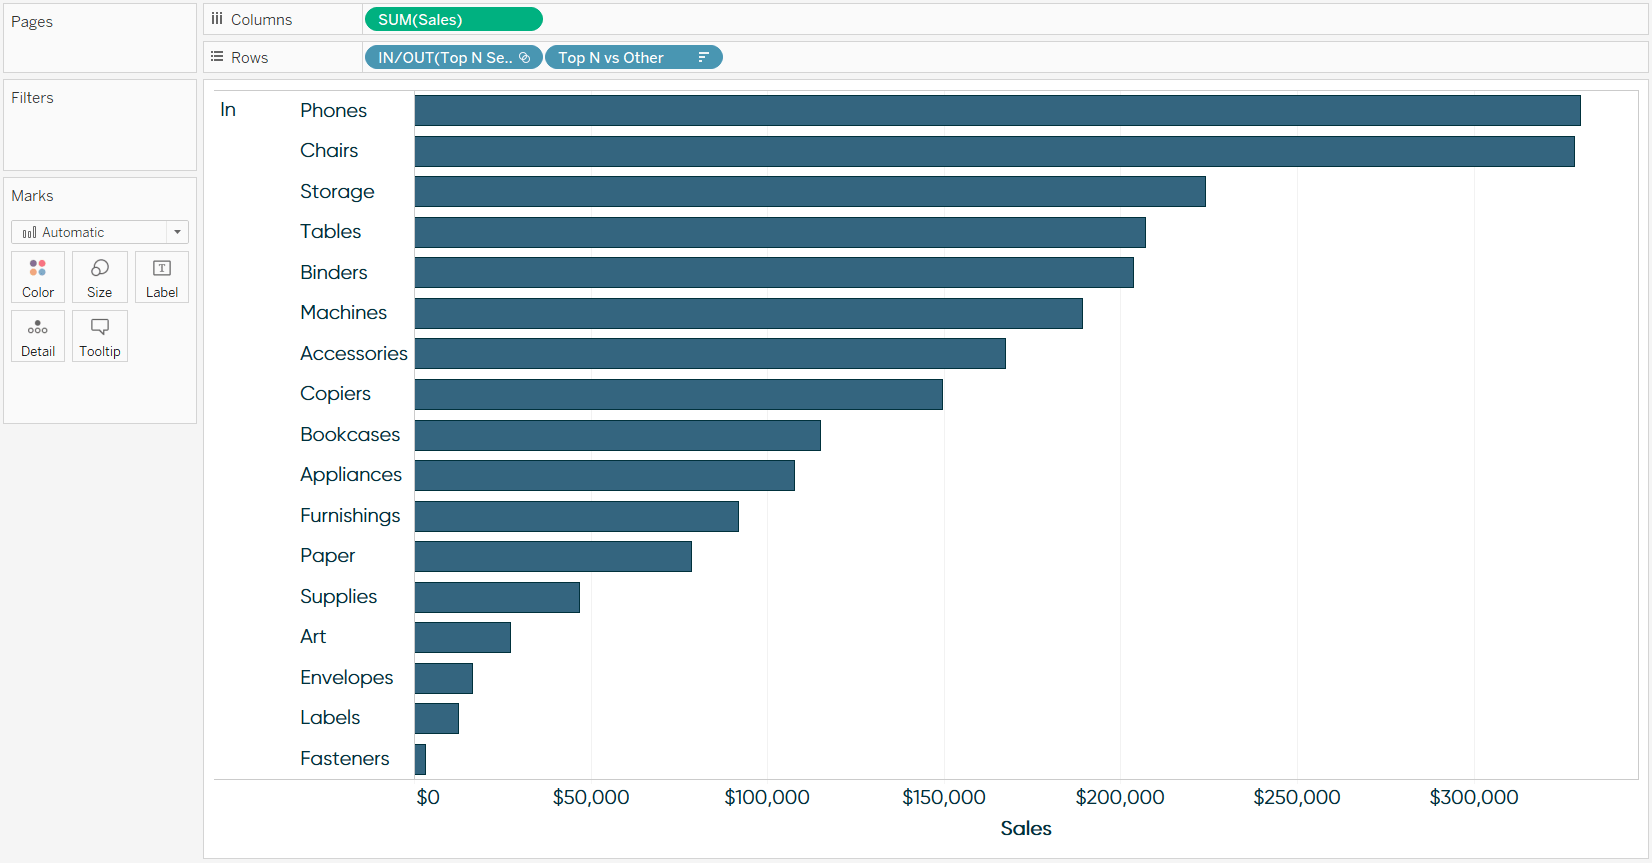 How To Use Tableau Set Actions To Compare The Top N Vs Other